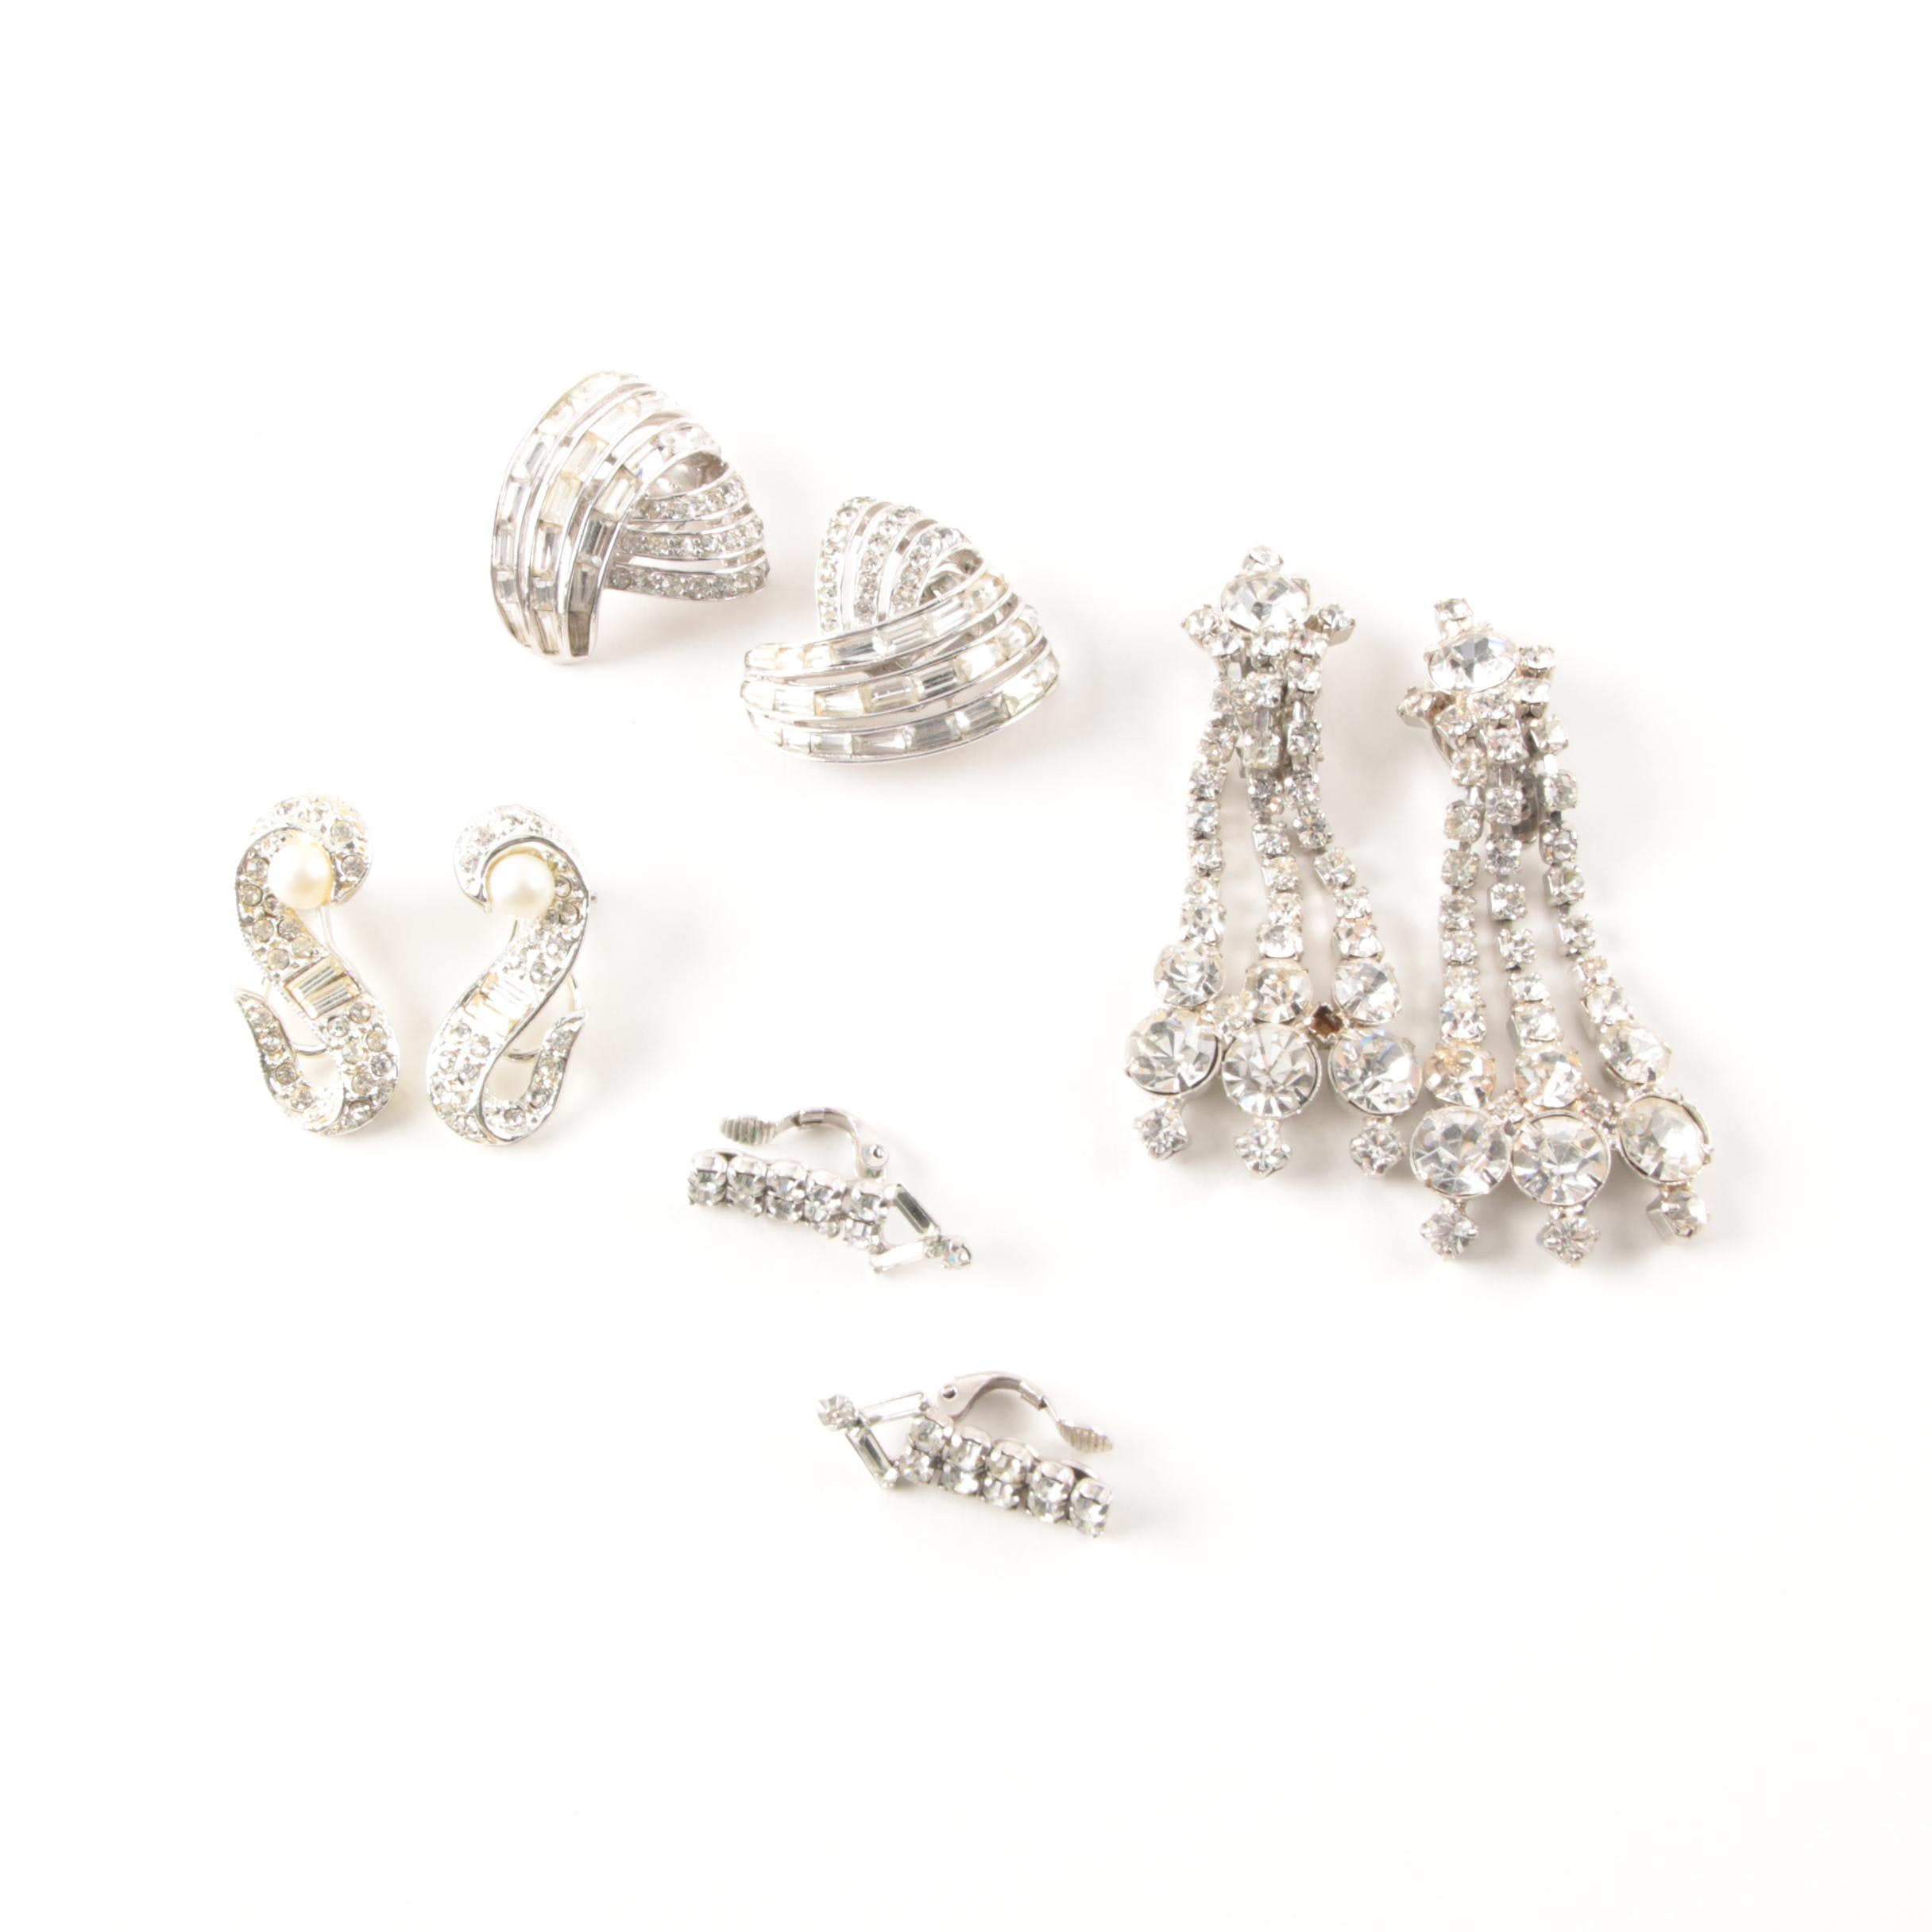 Silver-Tone Clip-On Earring Selection with Foil Back Accents